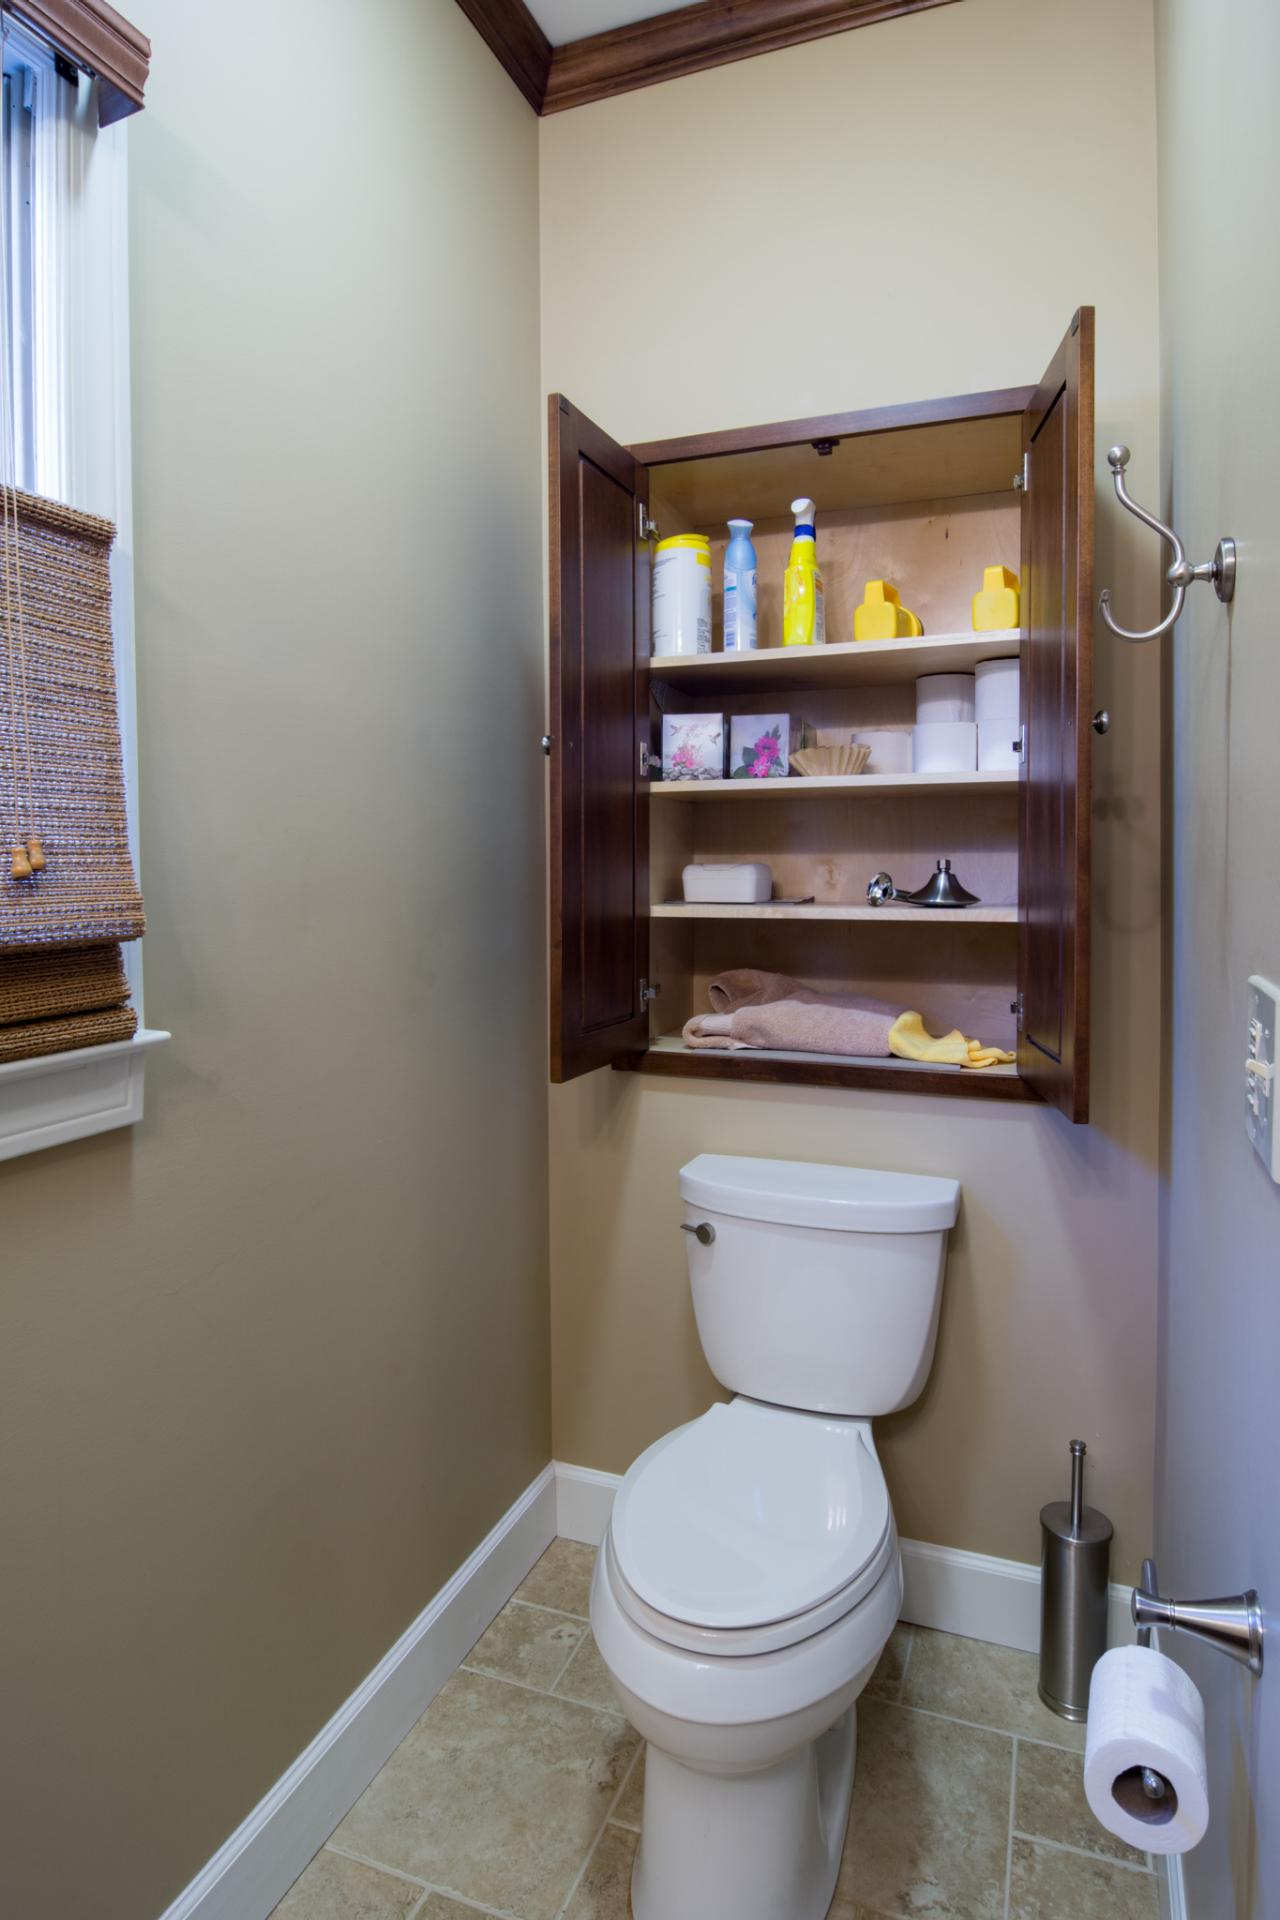 Small space bathroom storage ideas diy network blog for Diy bathroom ideas for small spaces